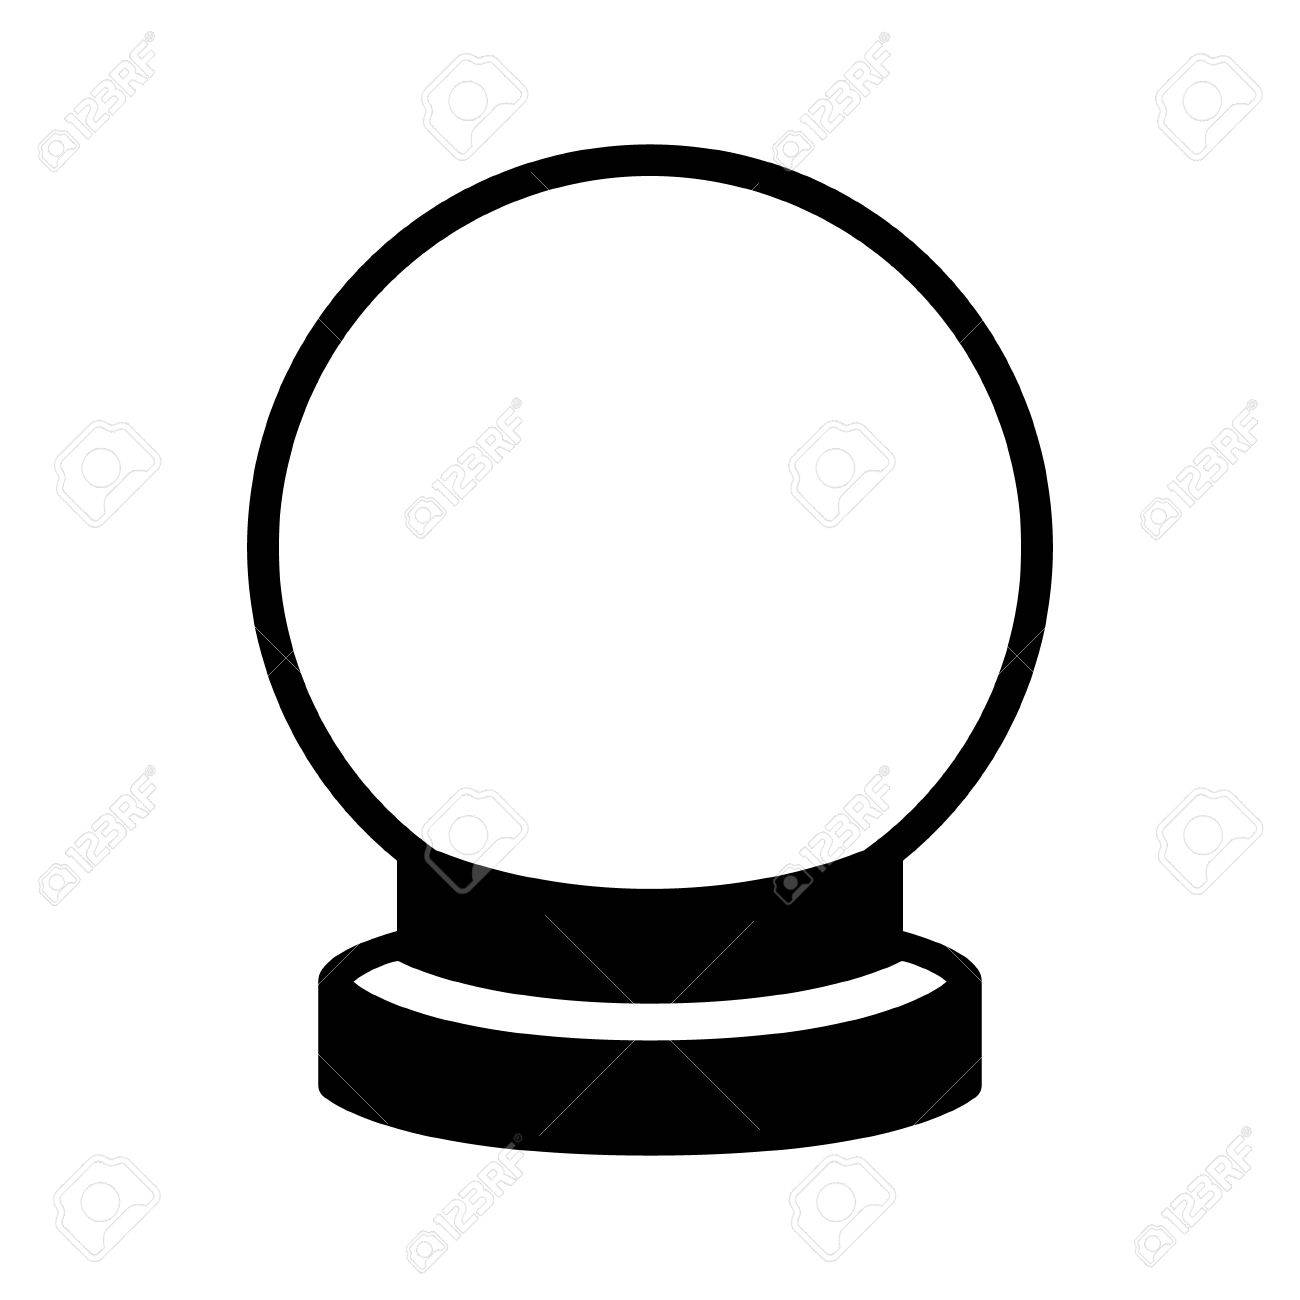 crystal ball of fortune telling flat icon for apps and websites rh 123rf com crystal ball clipart black and white magic crystal ball clipart